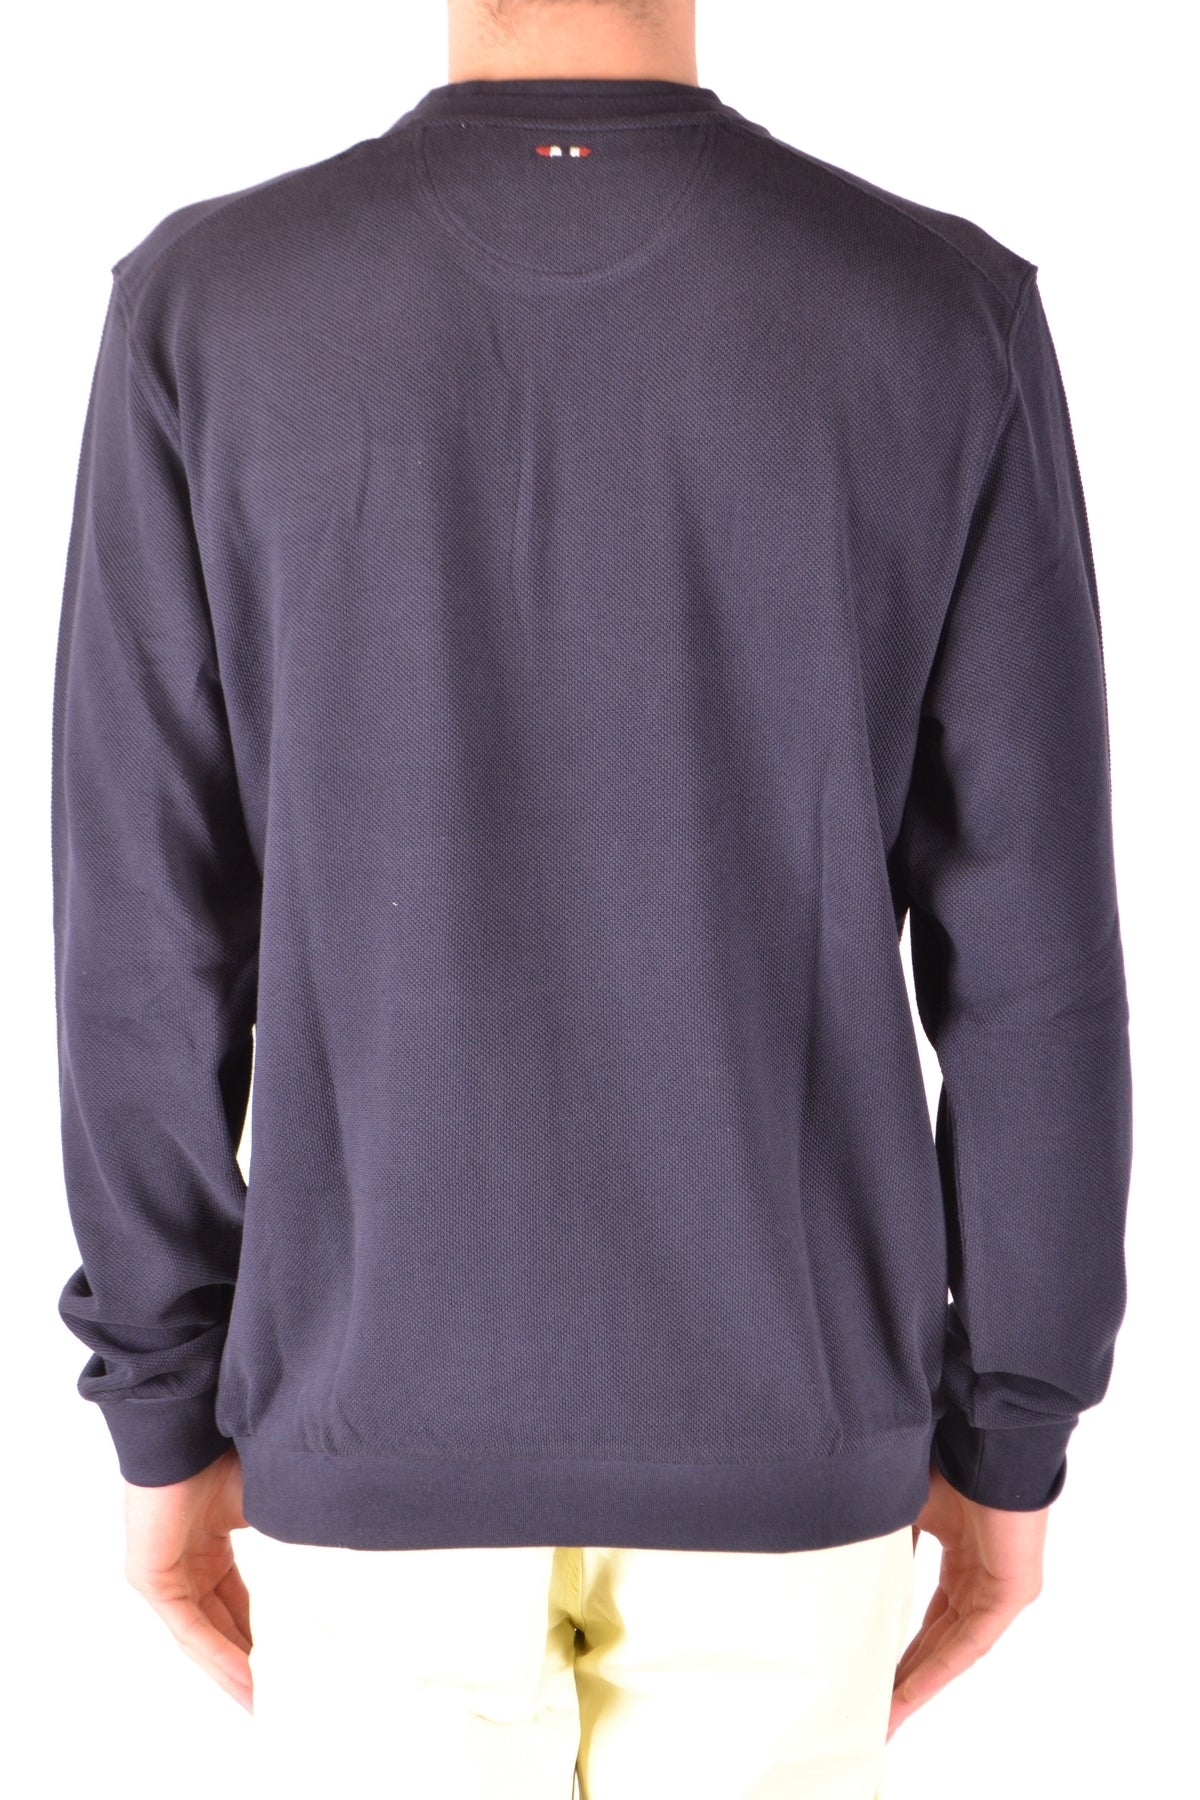 Sweater Napapijri-Men's Fashion - Men's Clothing - Hoodies & Sweatshirts-Product Details Manufacturer Part Number: Noyh8176Year: 2018Size: IntGender: ManMade In: BangladeshSeason: Spring / SummerMain Color: BlueClothing Type: Sweater And CardiganTerms: New With LabelComposition: Cotton 100%-Keyomi-Sook